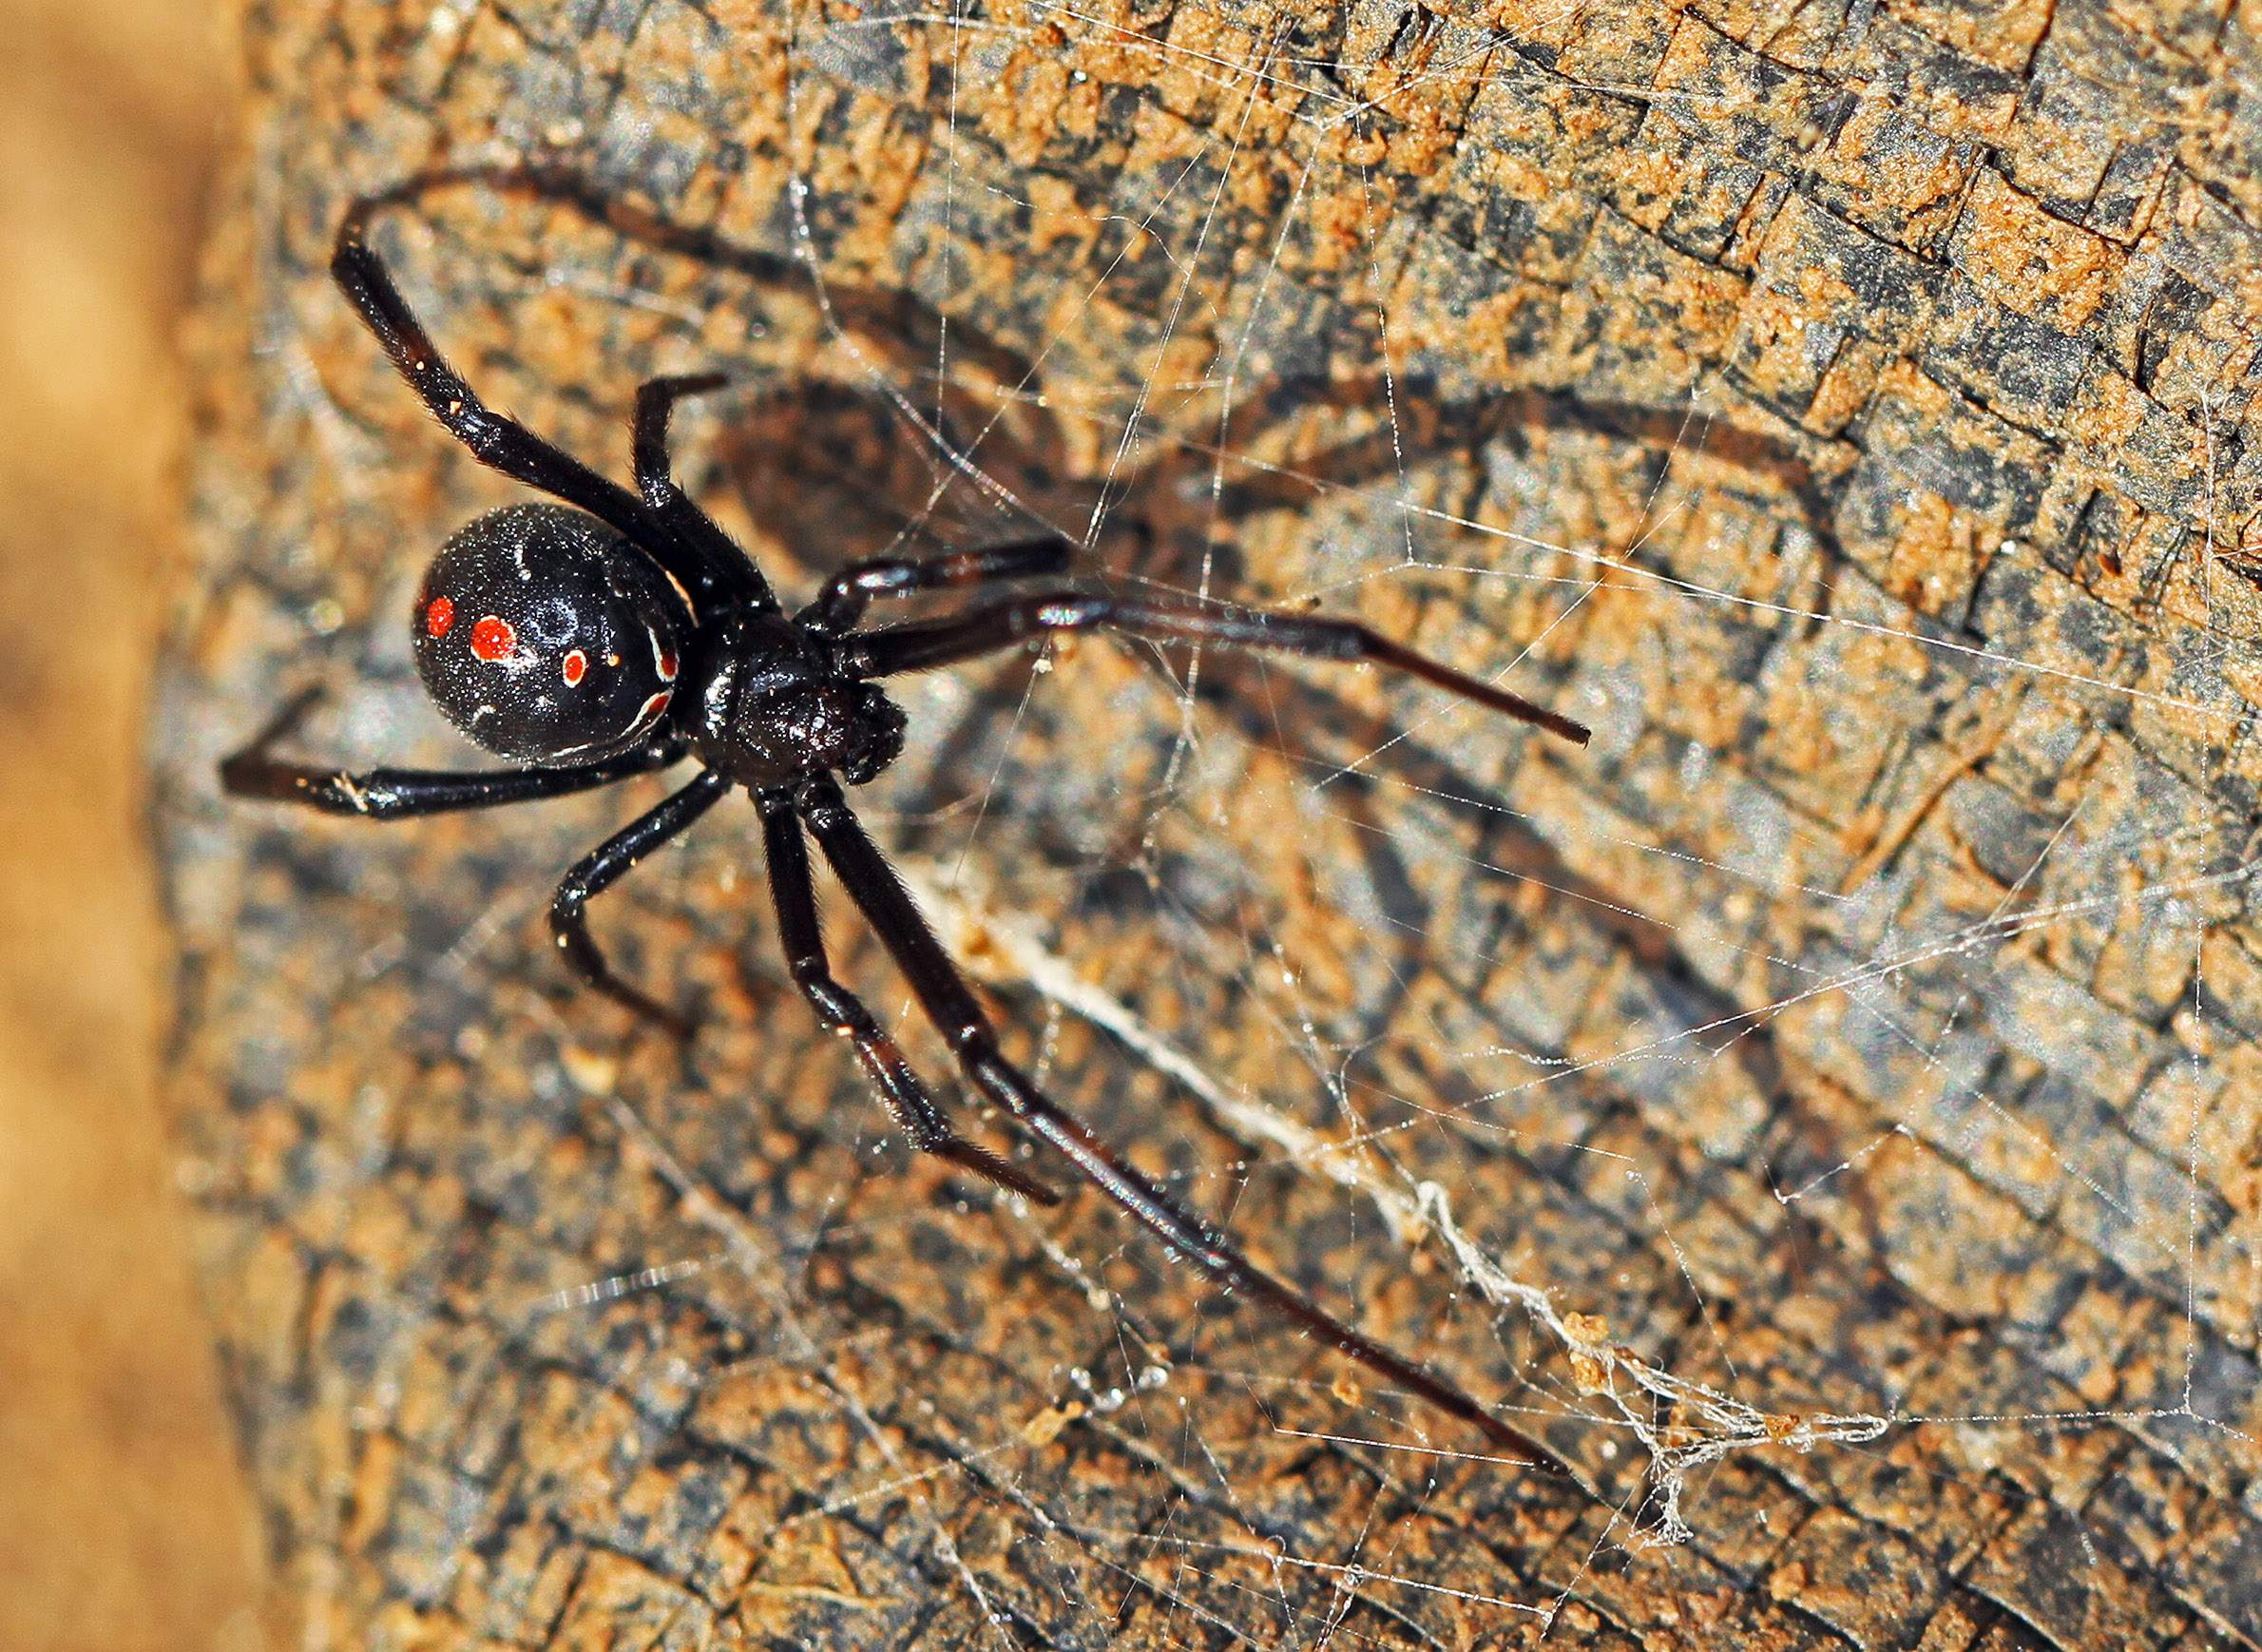 Northern Black Widow Is Rare In Wisconsin, But Sightings ... on iron man 2 map, blob map, brown widow map, captain america map, poison ivy map, widow spider map, black wolf map, minecraft spider-man map, vision map, stark expo map,